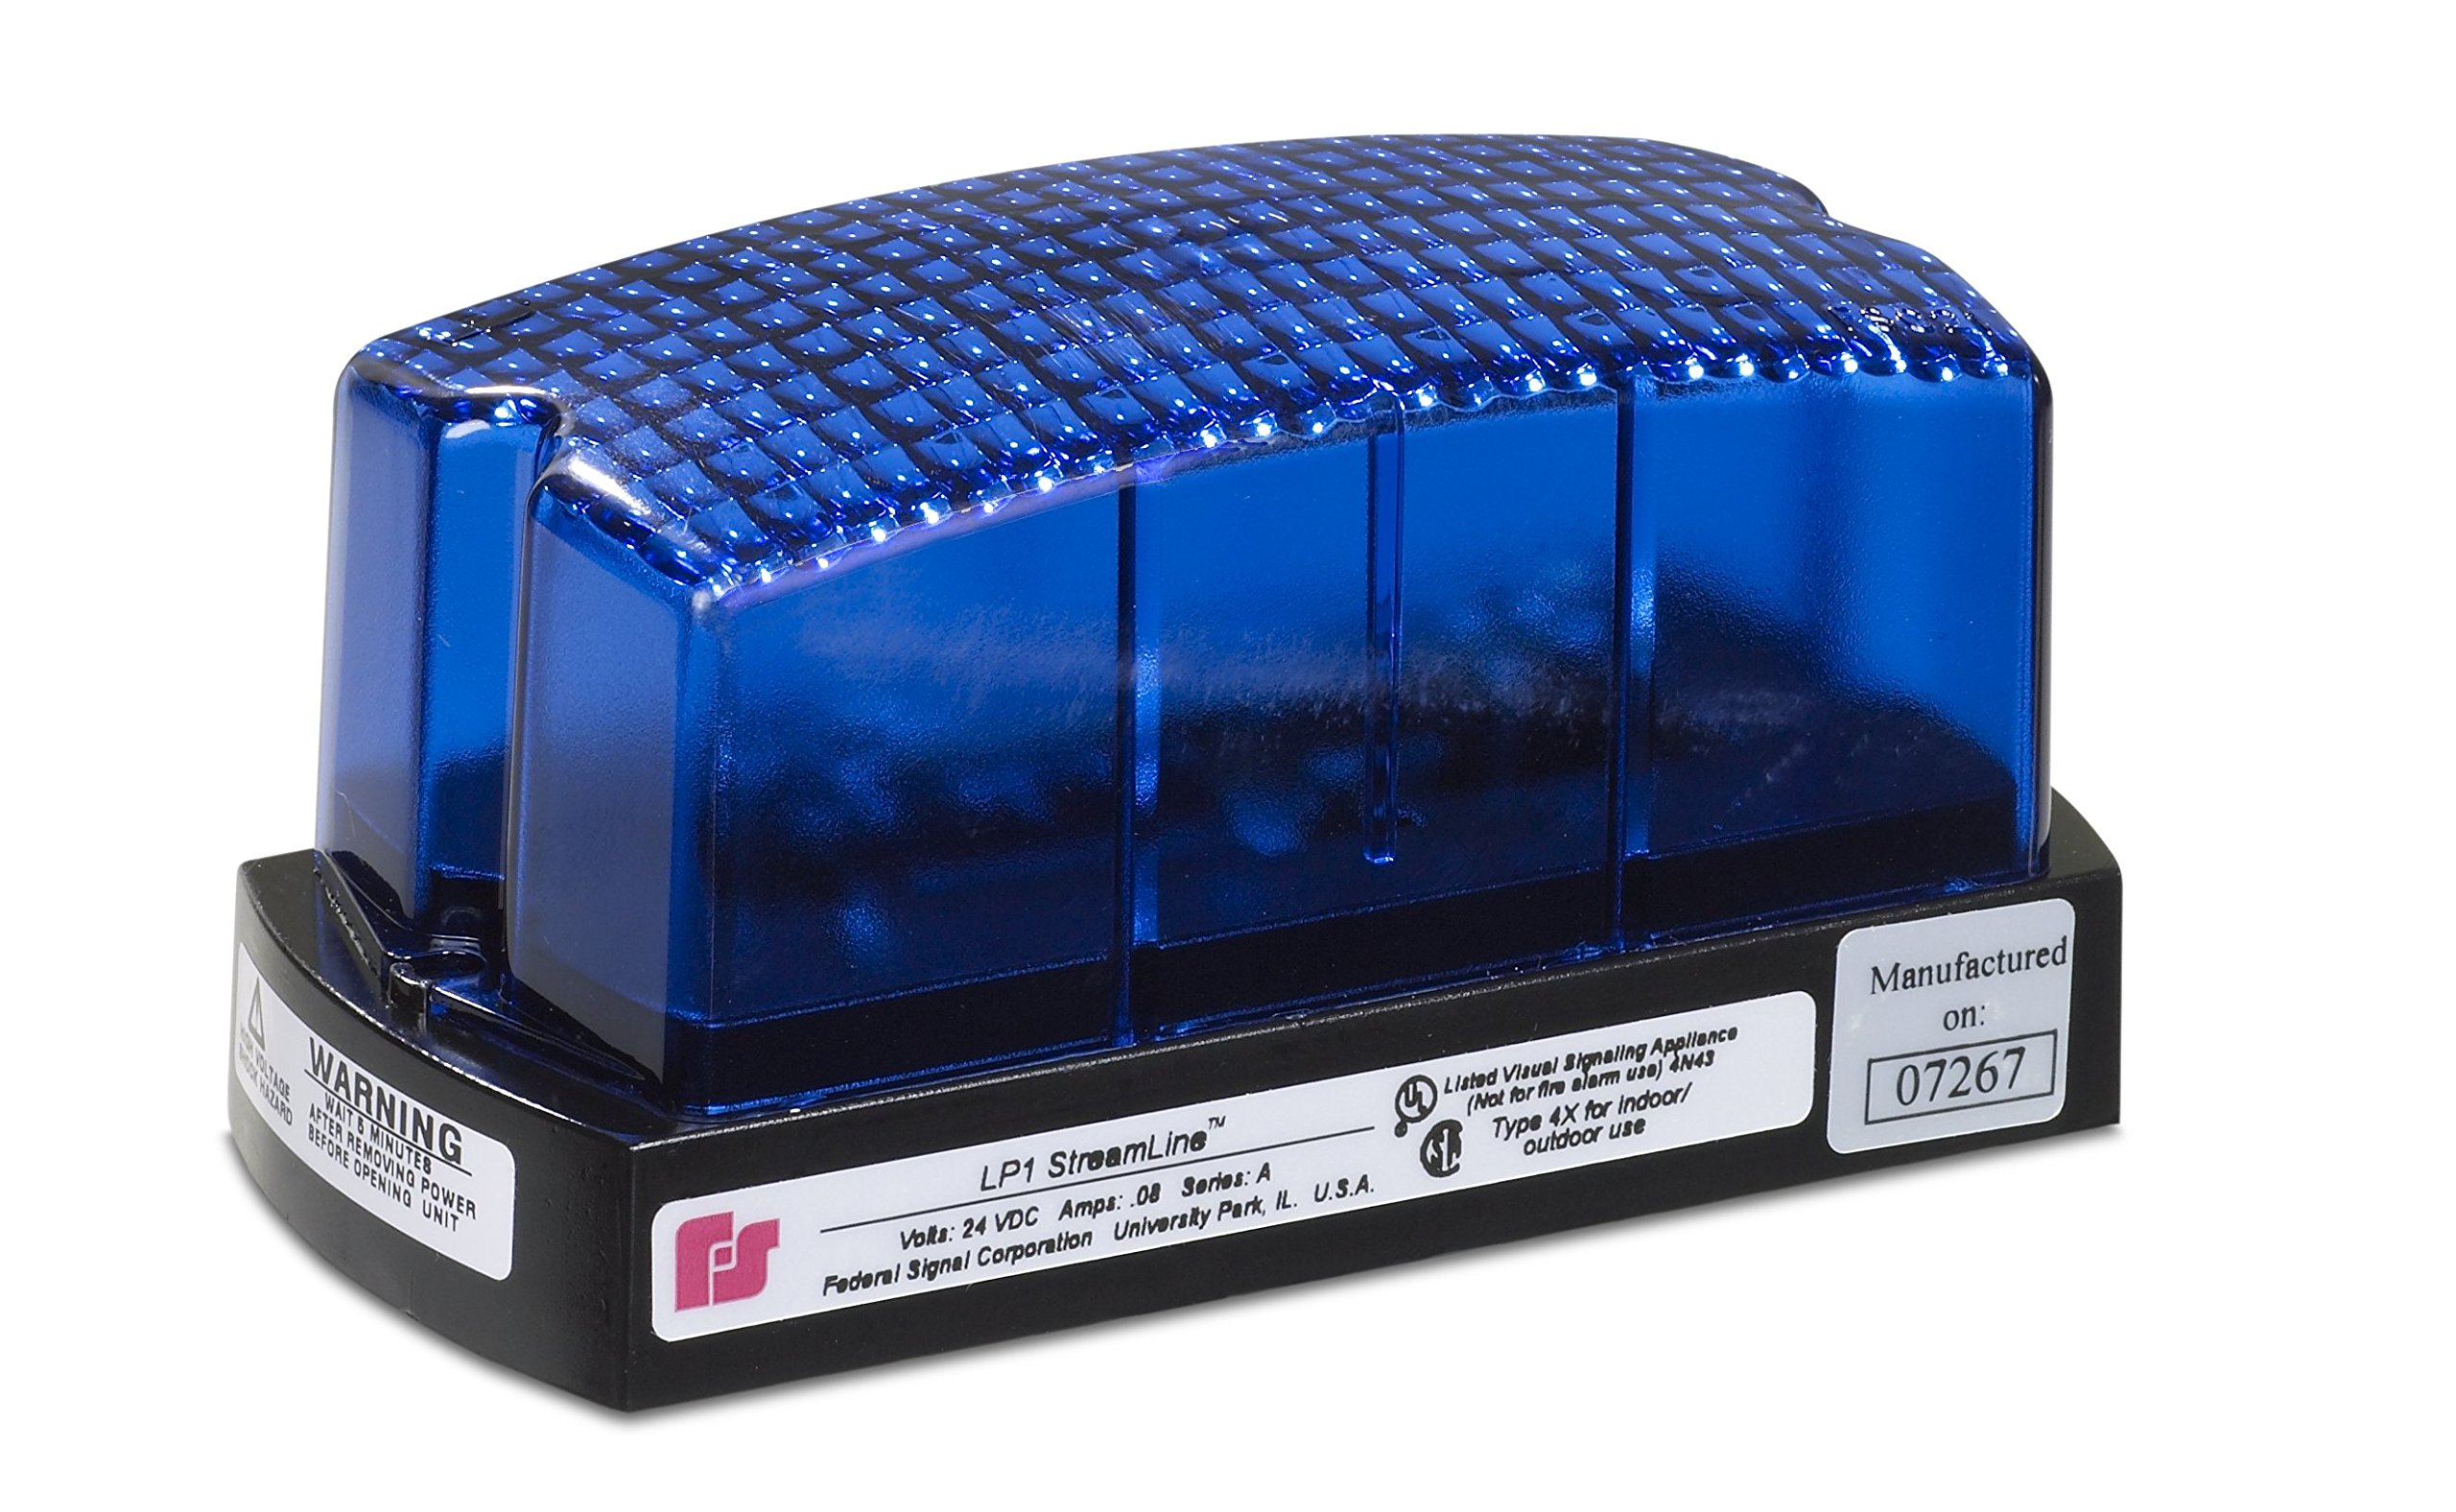 Federal Signal LP1-120B Streamline Low Profile Mini Strobe Light, Surface Mount, 120 VAC, Blue by Federal Signal (Image #1)